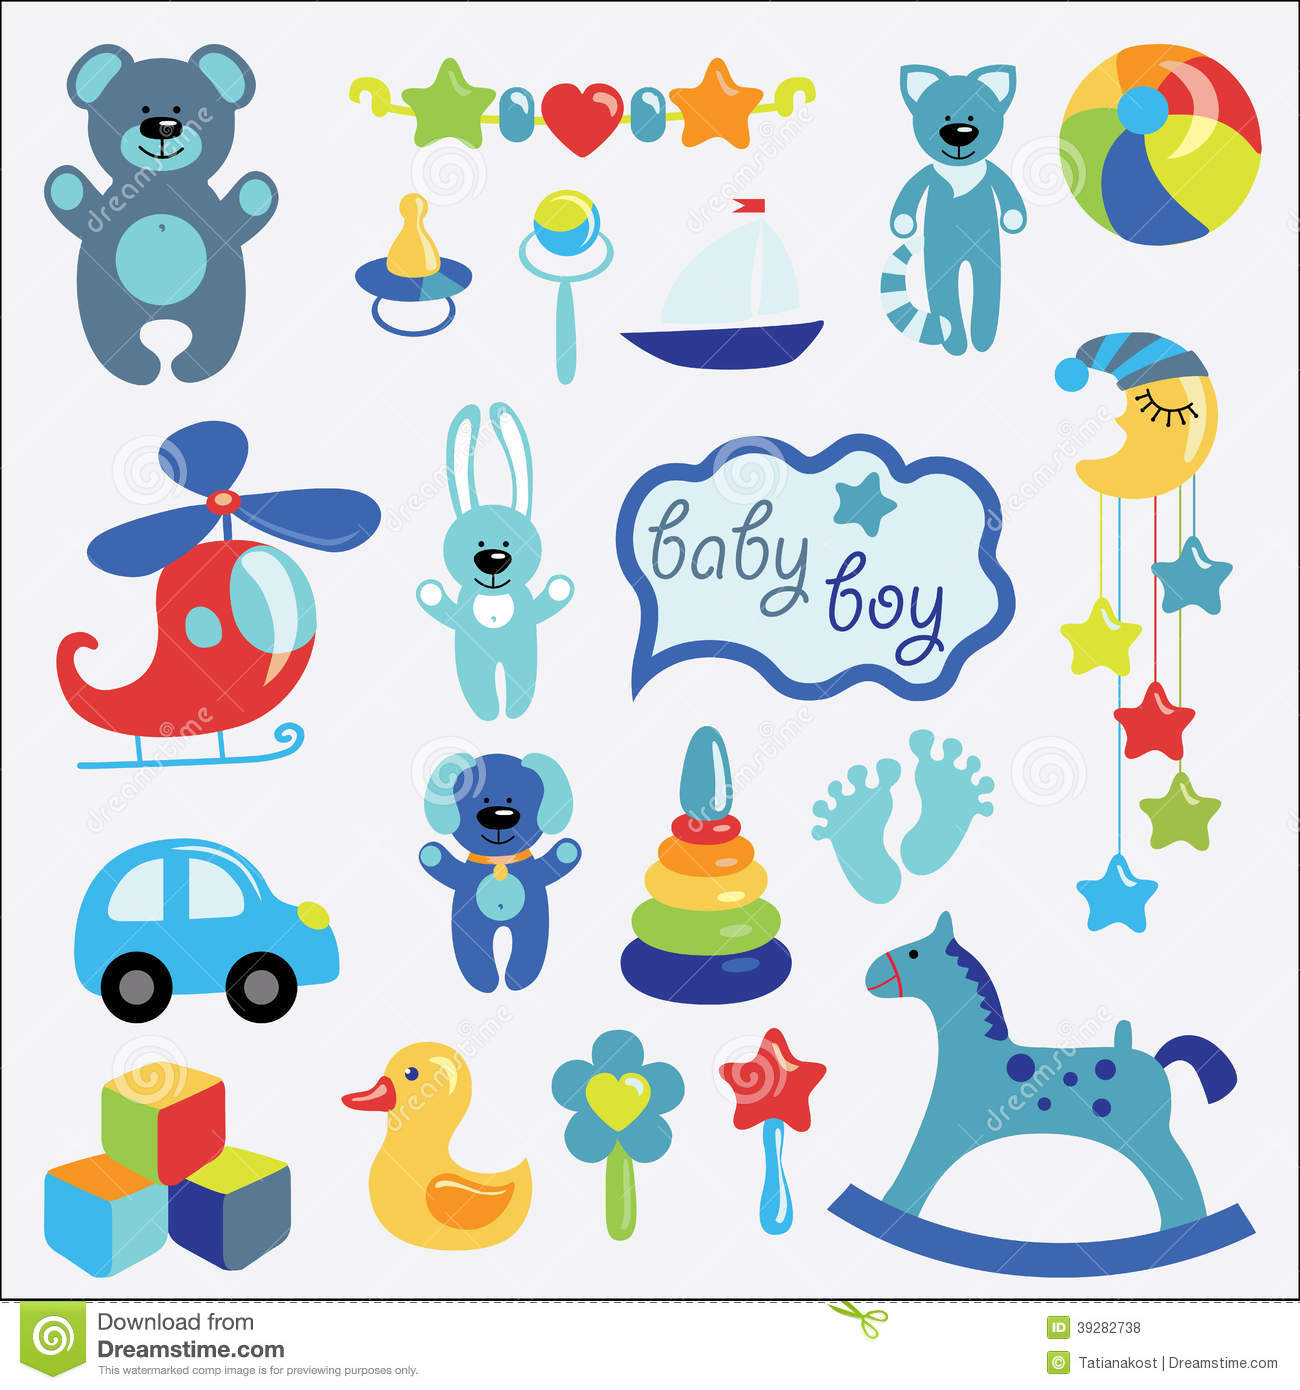 Baby boy toys clipart 1 » Clipart Station.